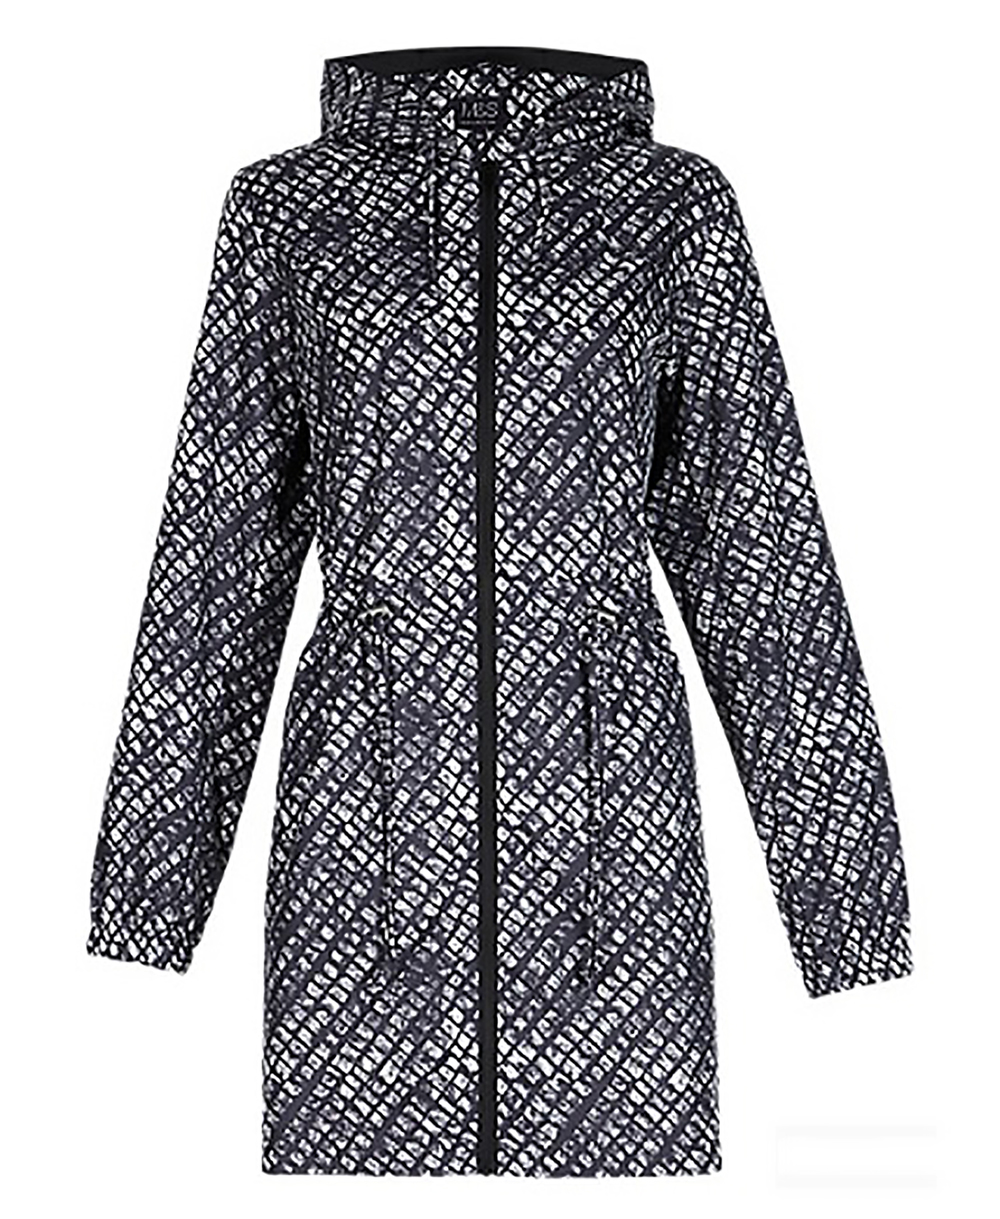 M&S collection water resistant hooded abstract print parka rain gear 1500.jpg